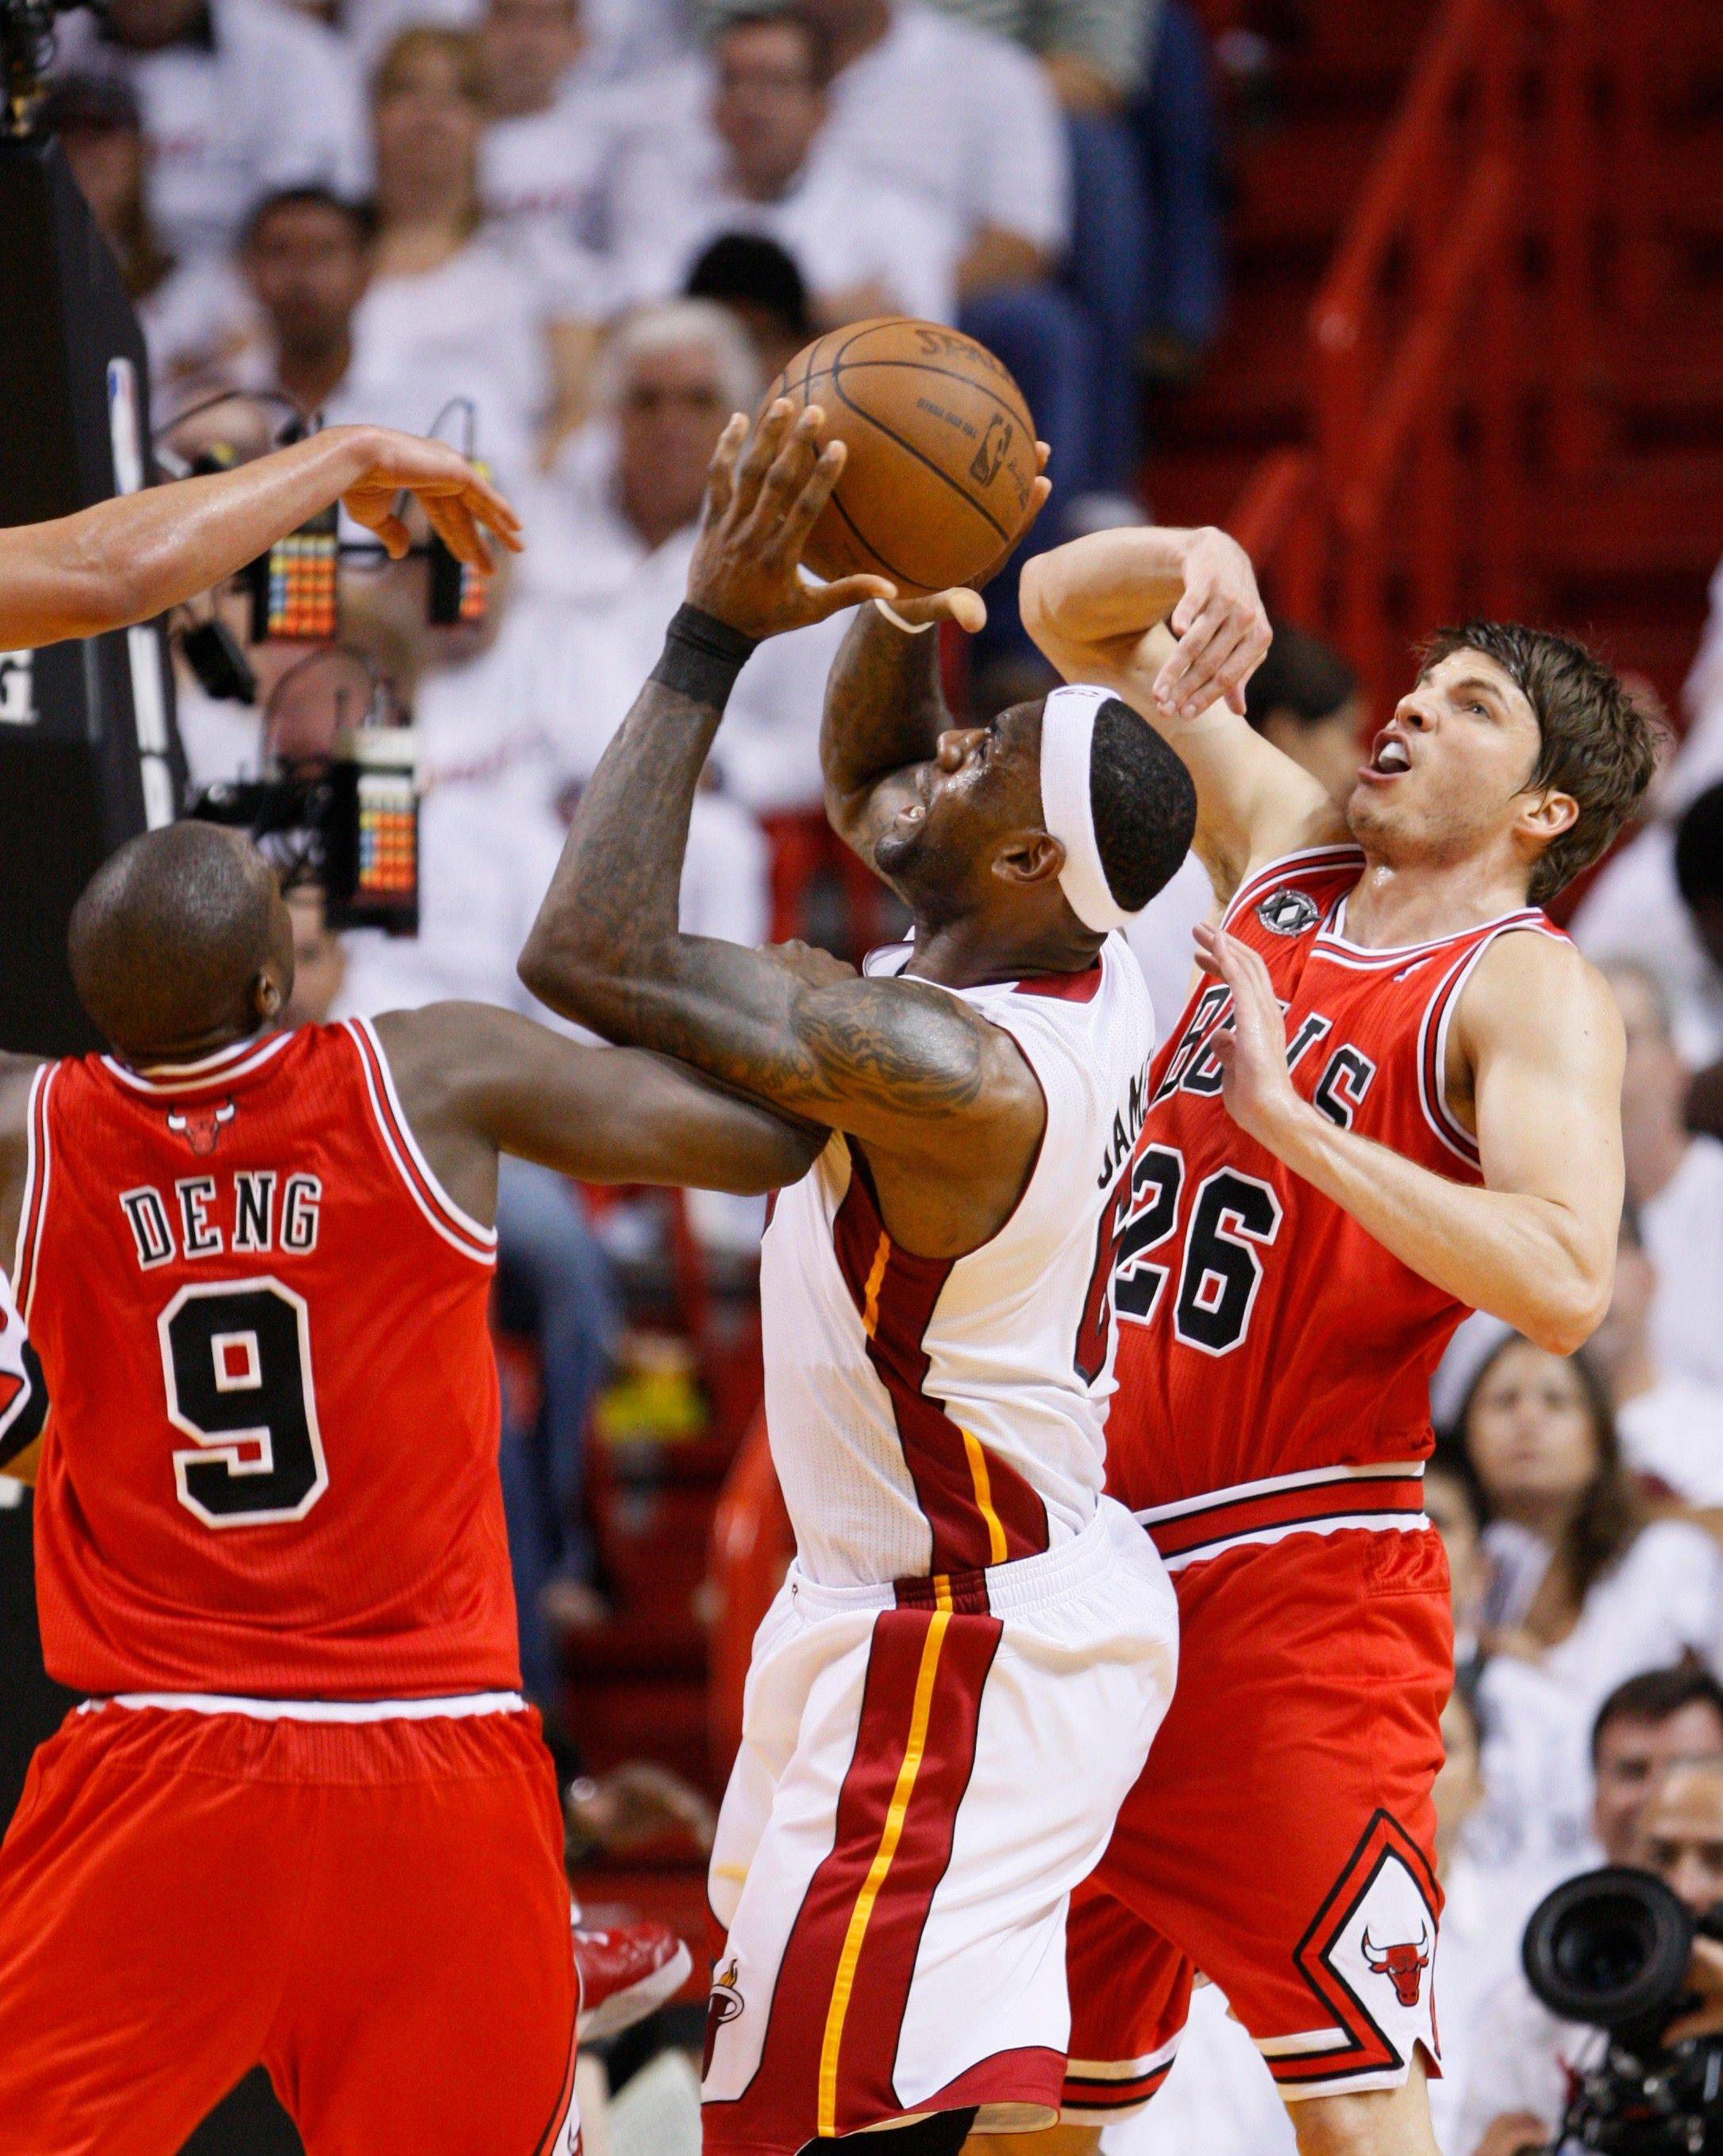 Miami Heat's LeBron James, center, goes up for a shot against Chicago Bulls' Luol Deng (9) and Kyle Korver (26) during the second half of Game 3 of the NBA Eastern Conference finals basketball series in Miami, Sunday, May 22, 2011.